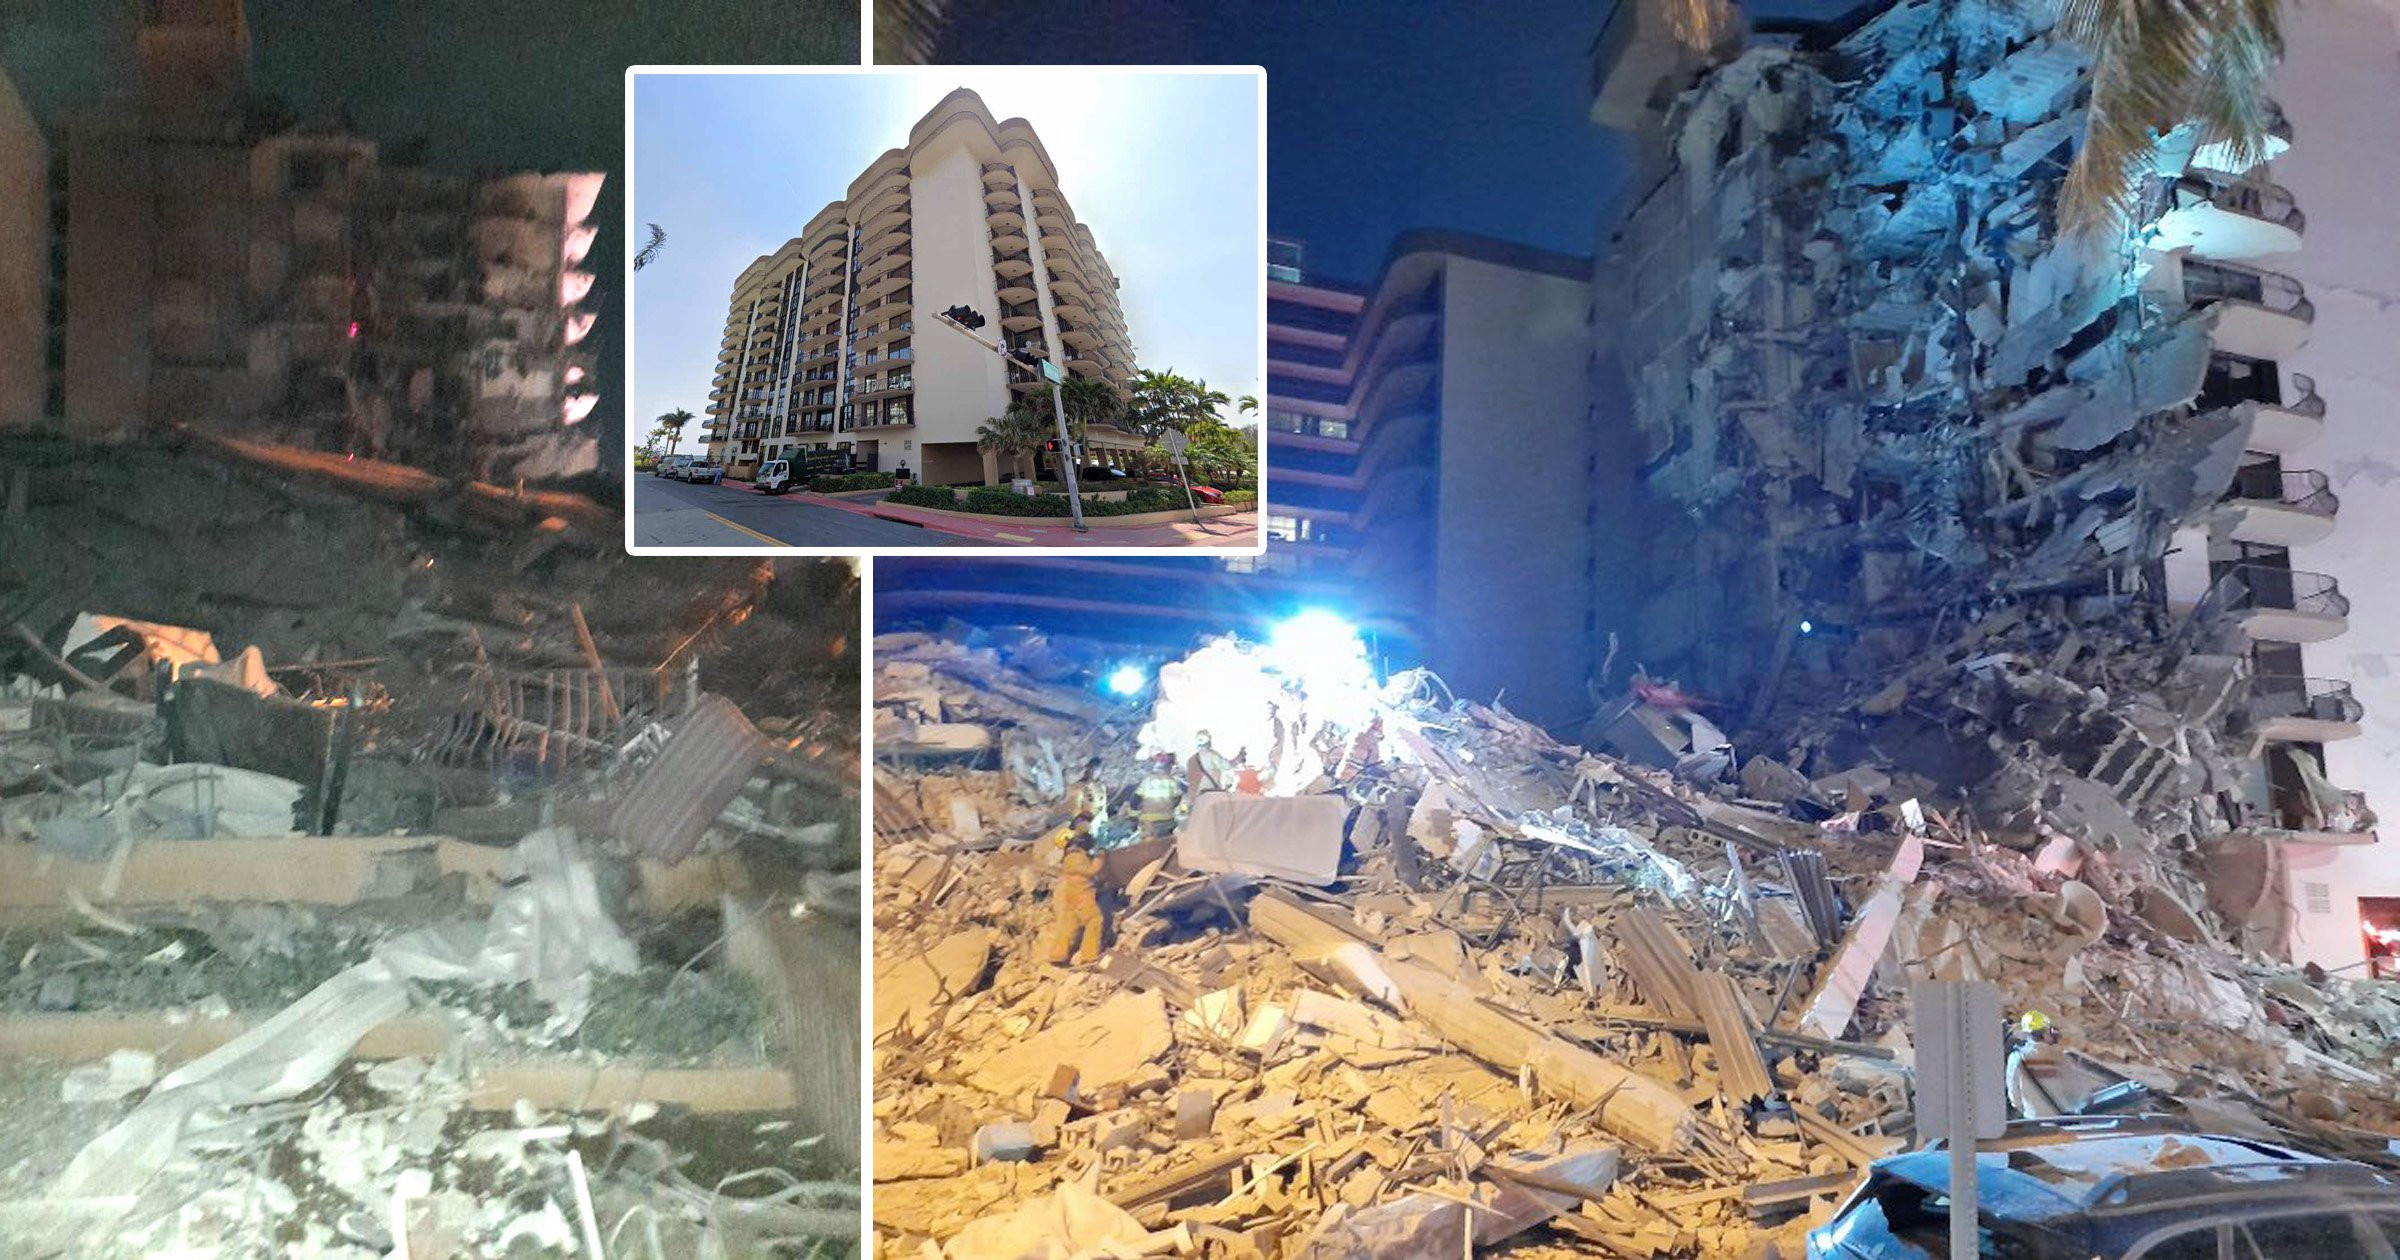 Huge emergency operation under way after building collapse in Miami